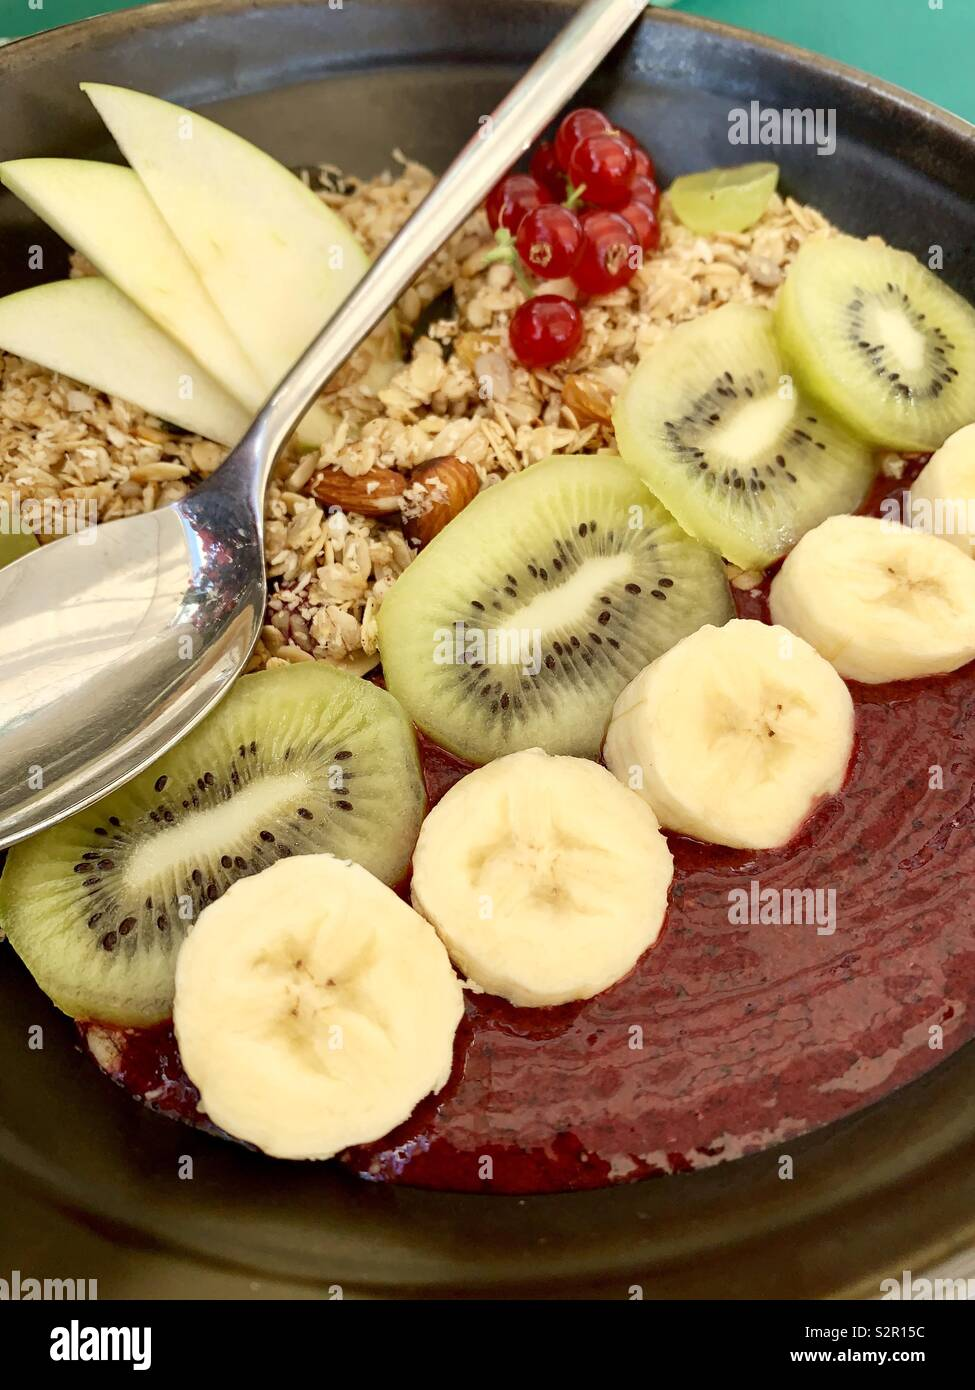 Smoothie breakfast bowl - Stock Image